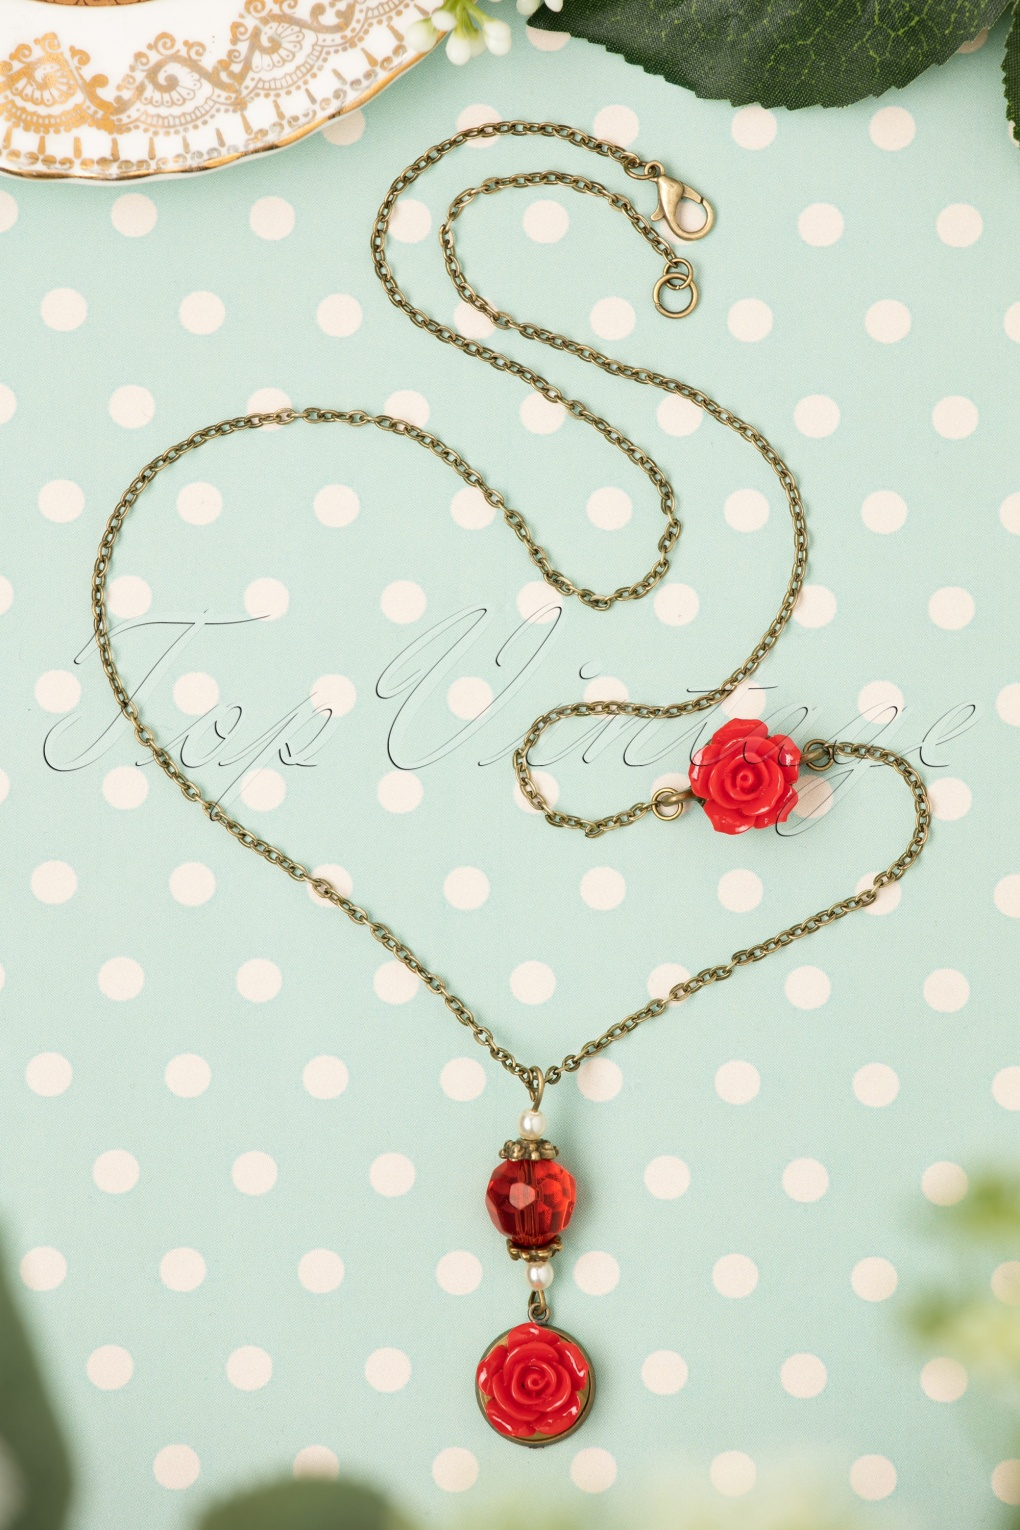 New 1940s Costume Jewelry: Necklaces, Earrings, Pins 40s I Love My Red Roses Necklace £13.77 AT vintagedancer.com